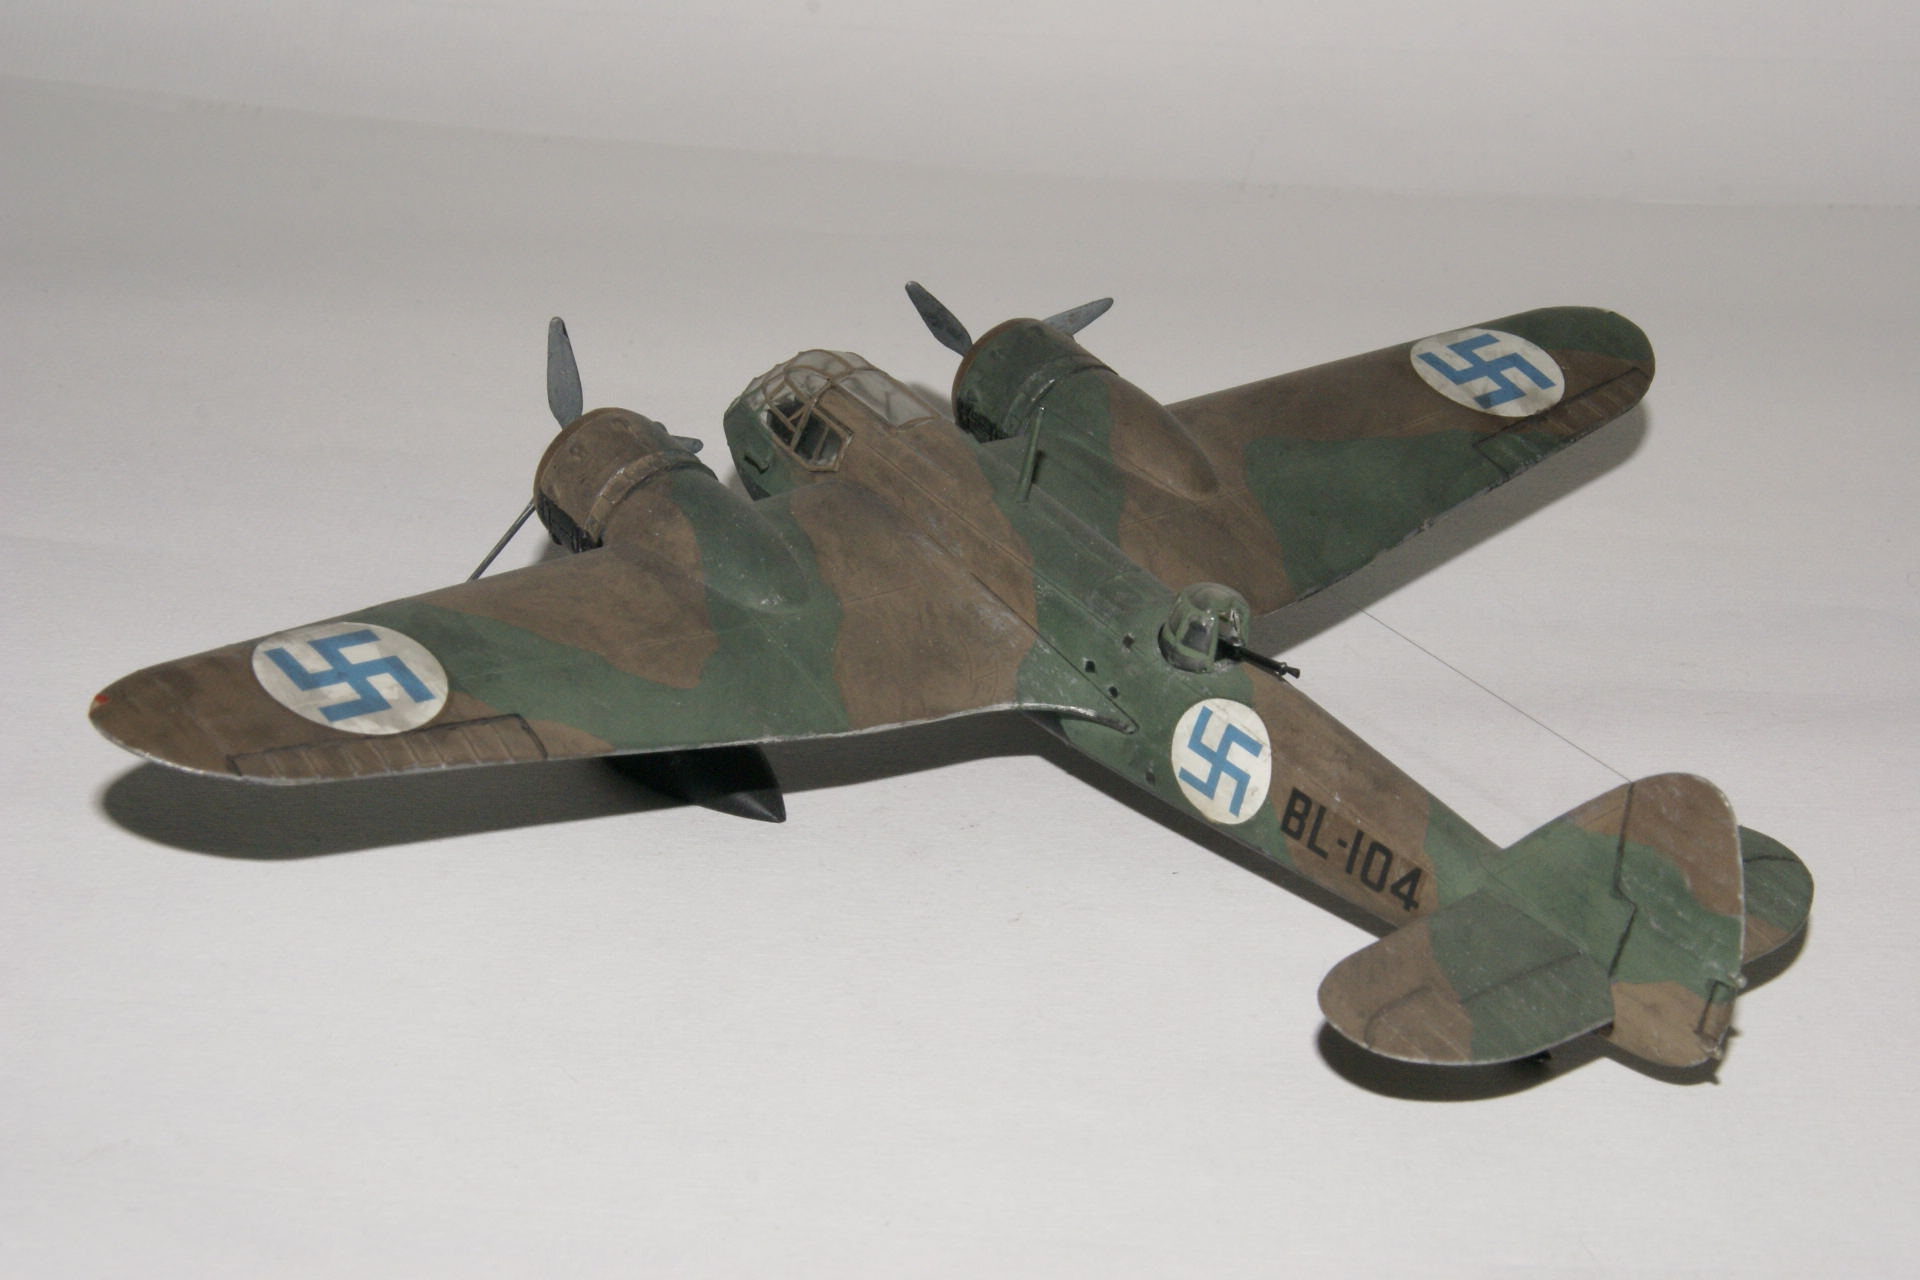 Bristol blenheim i series i 2